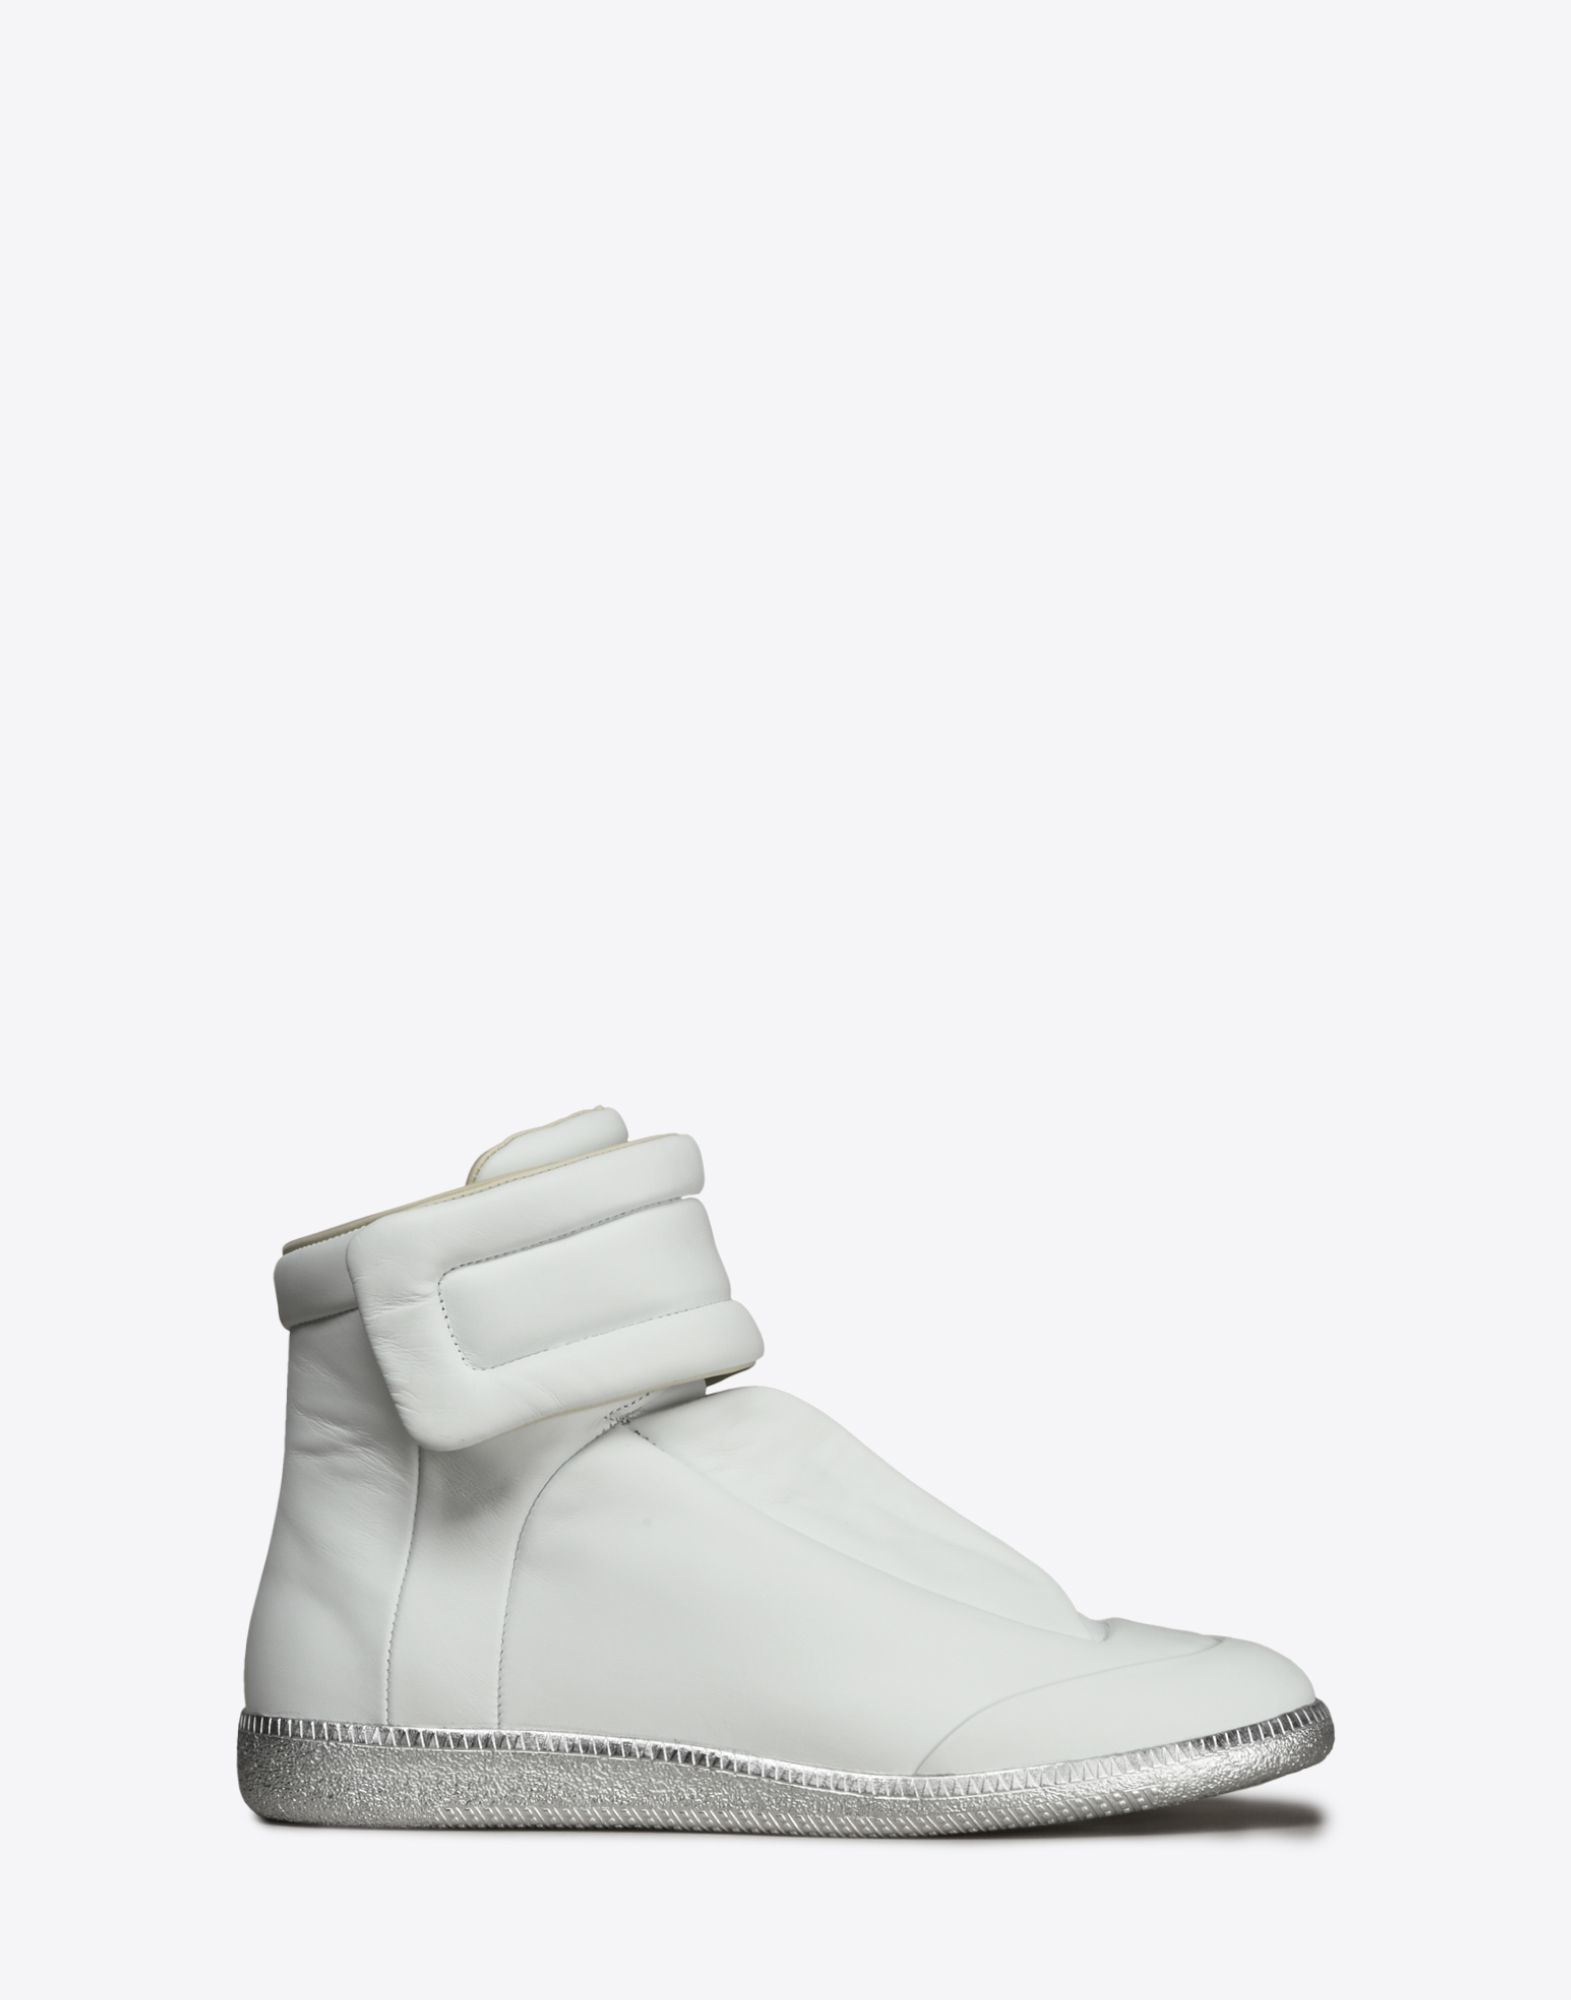 maison margiela future high top leather sneakers in white lyst. Black Bedroom Furniture Sets. Home Design Ideas